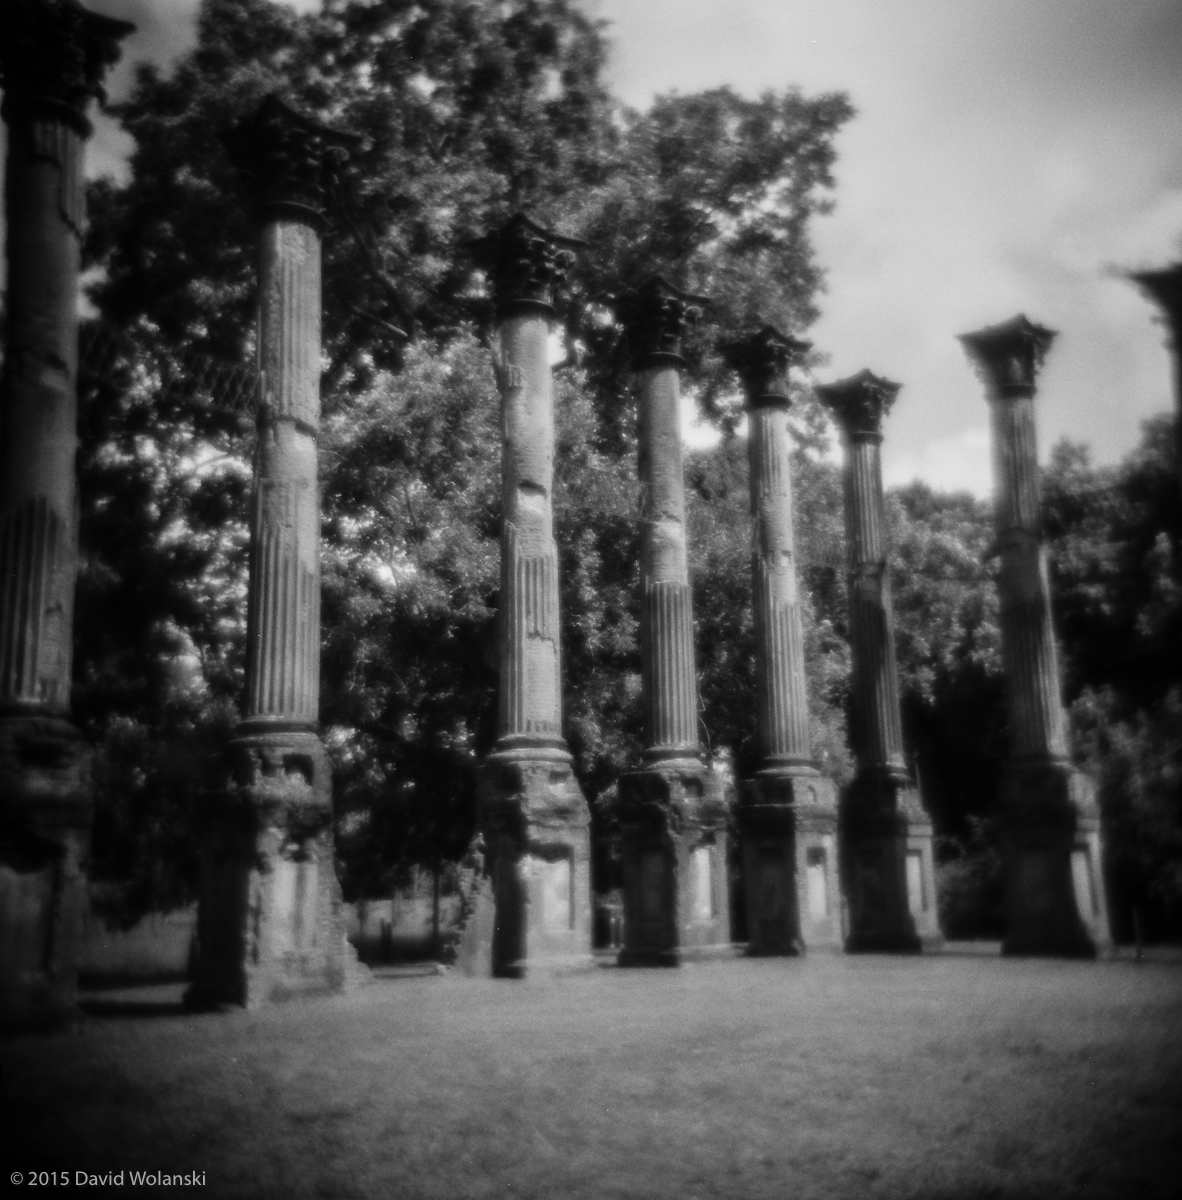 The Windsor Columns